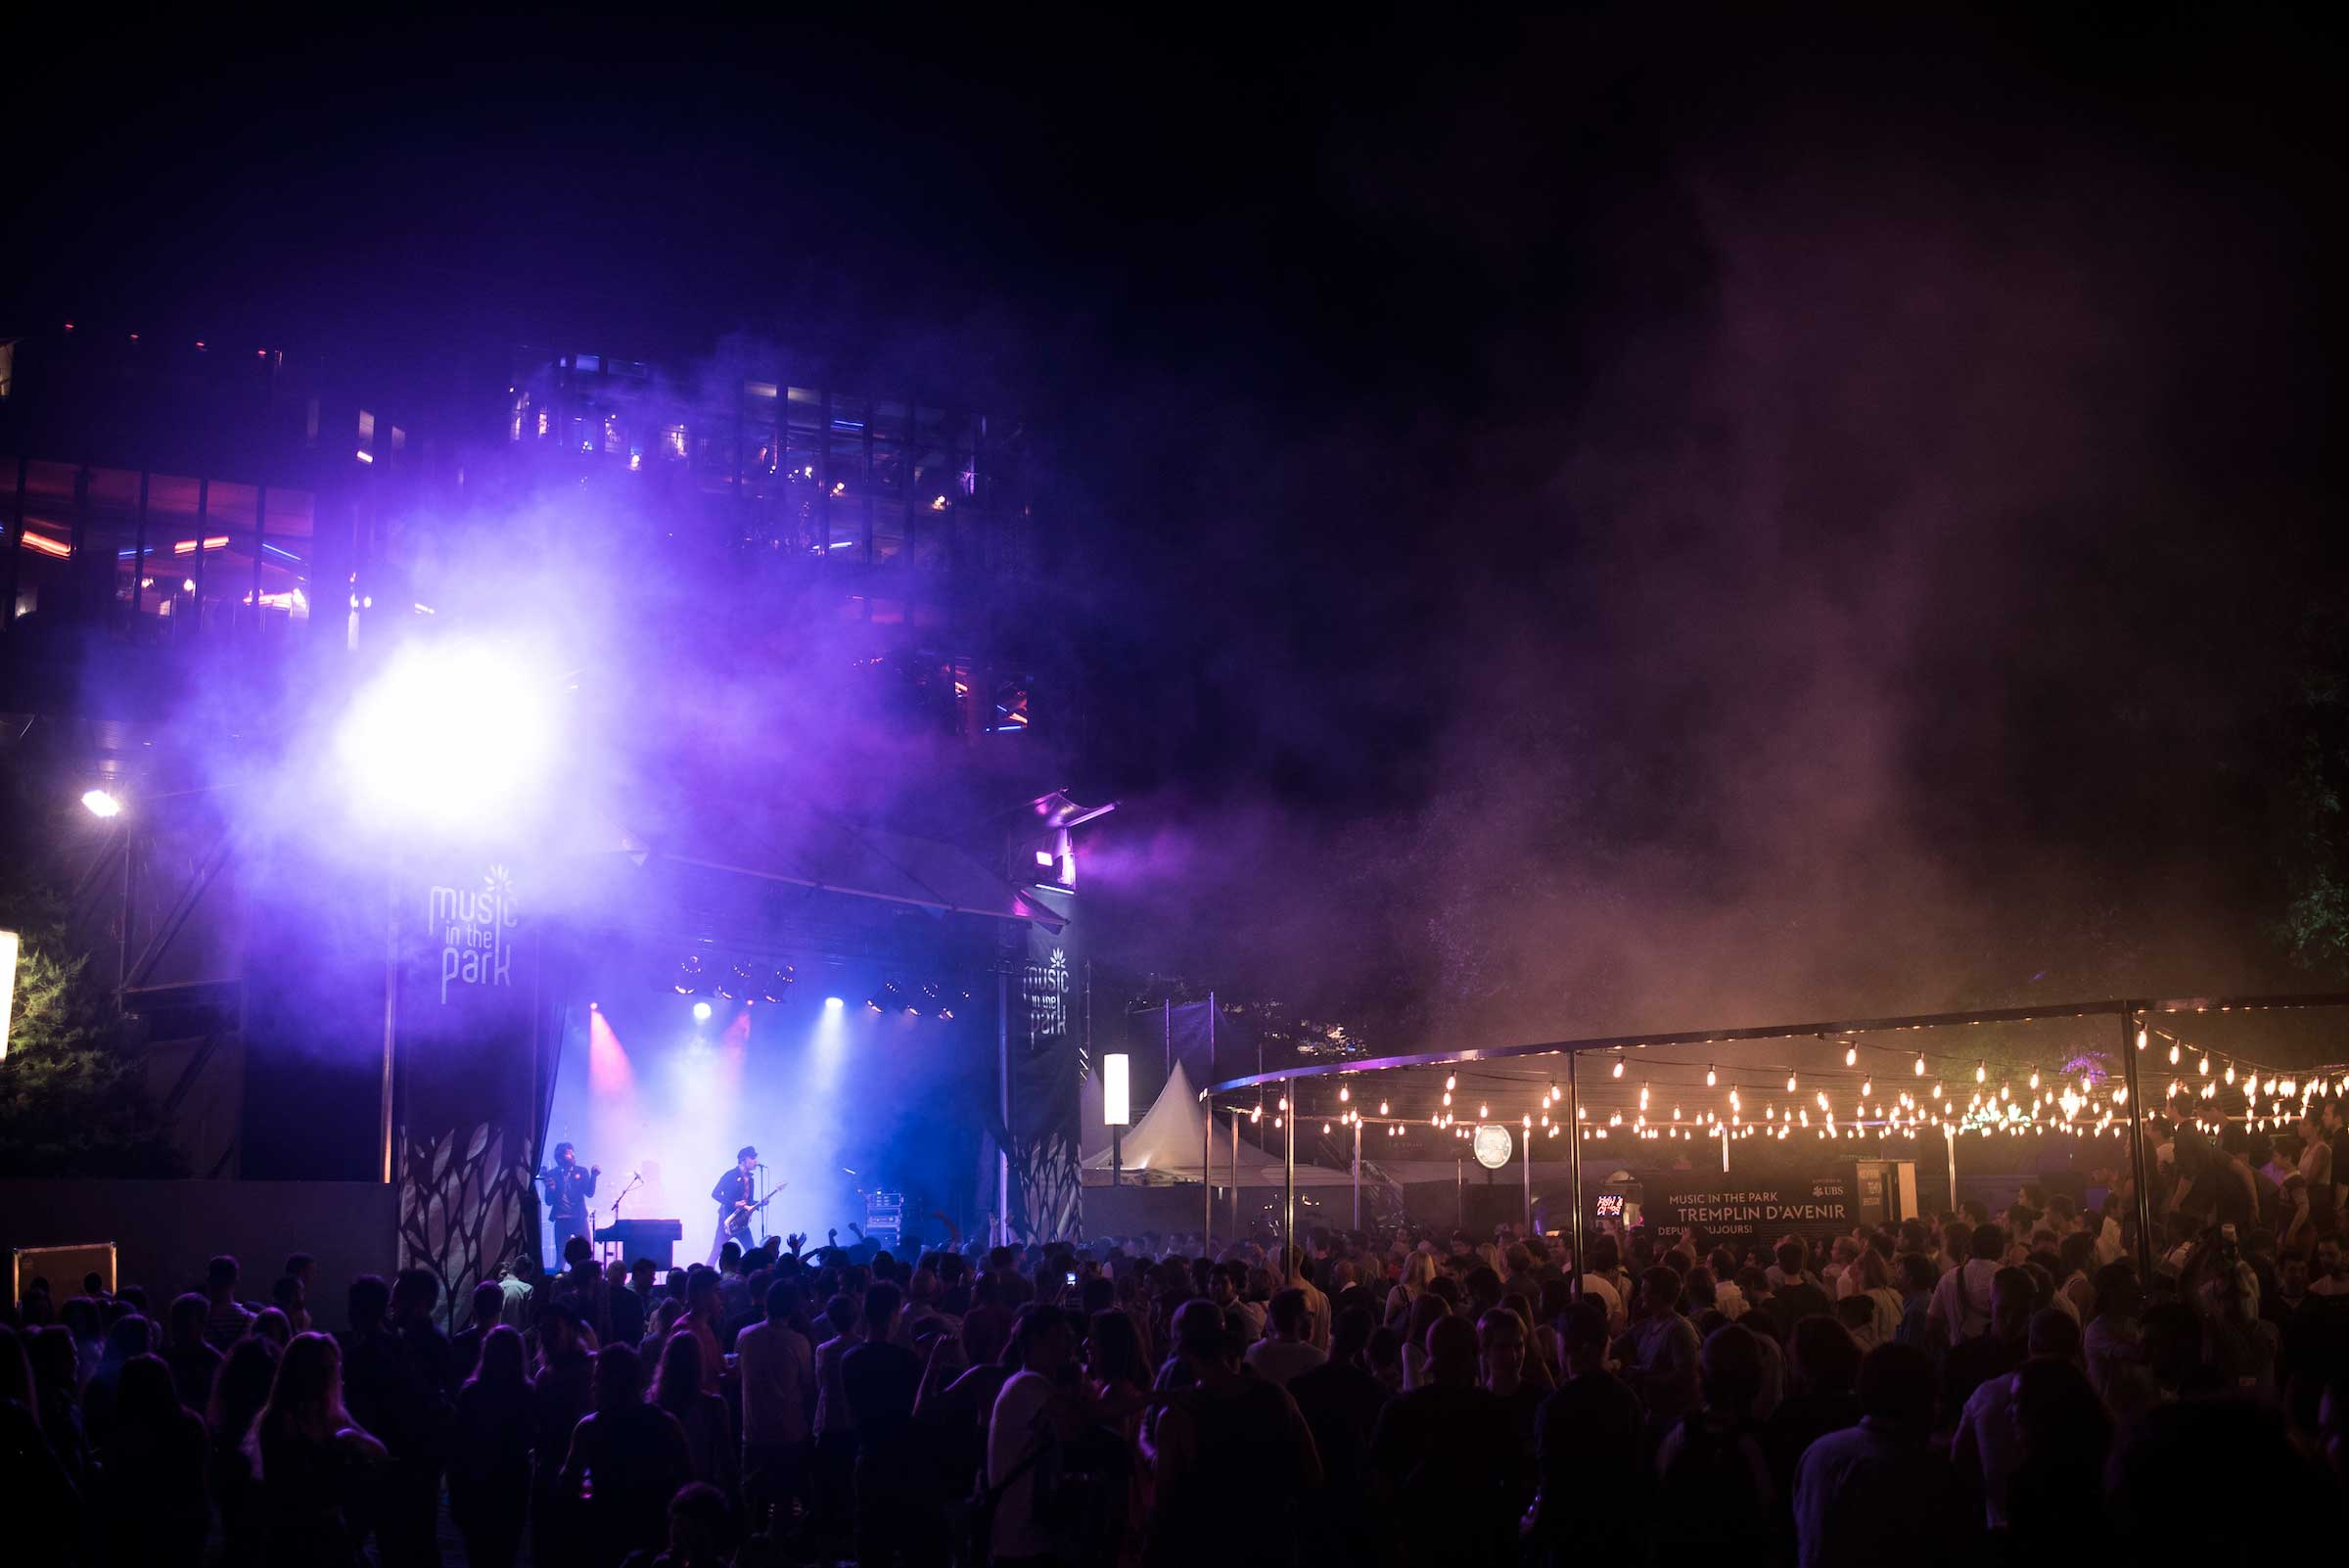 a duo performing onstage in a purple glow before a huge crowd at Music in the Park, Montreax Jazz Festival